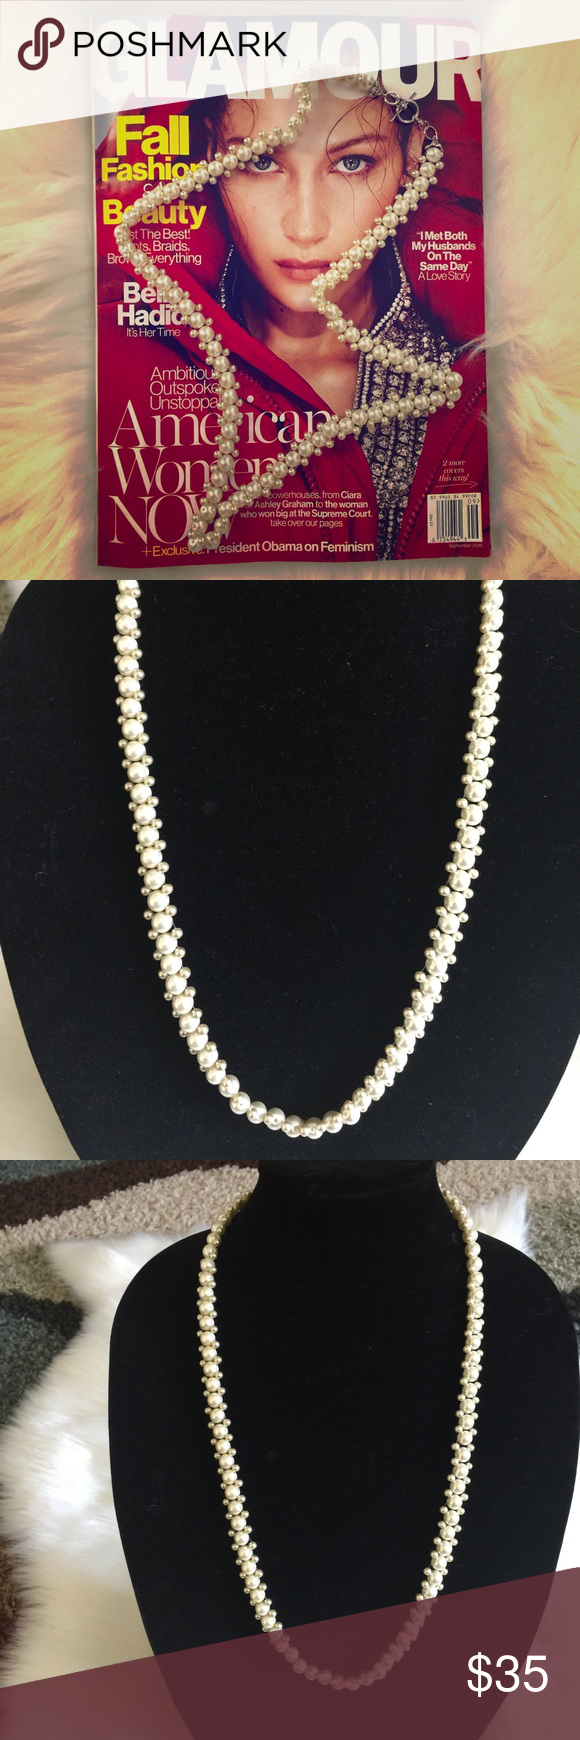 🌟Necklace 🌟 Beautiful handmade single strand faux pearl necklace. Jewelry Necklaces